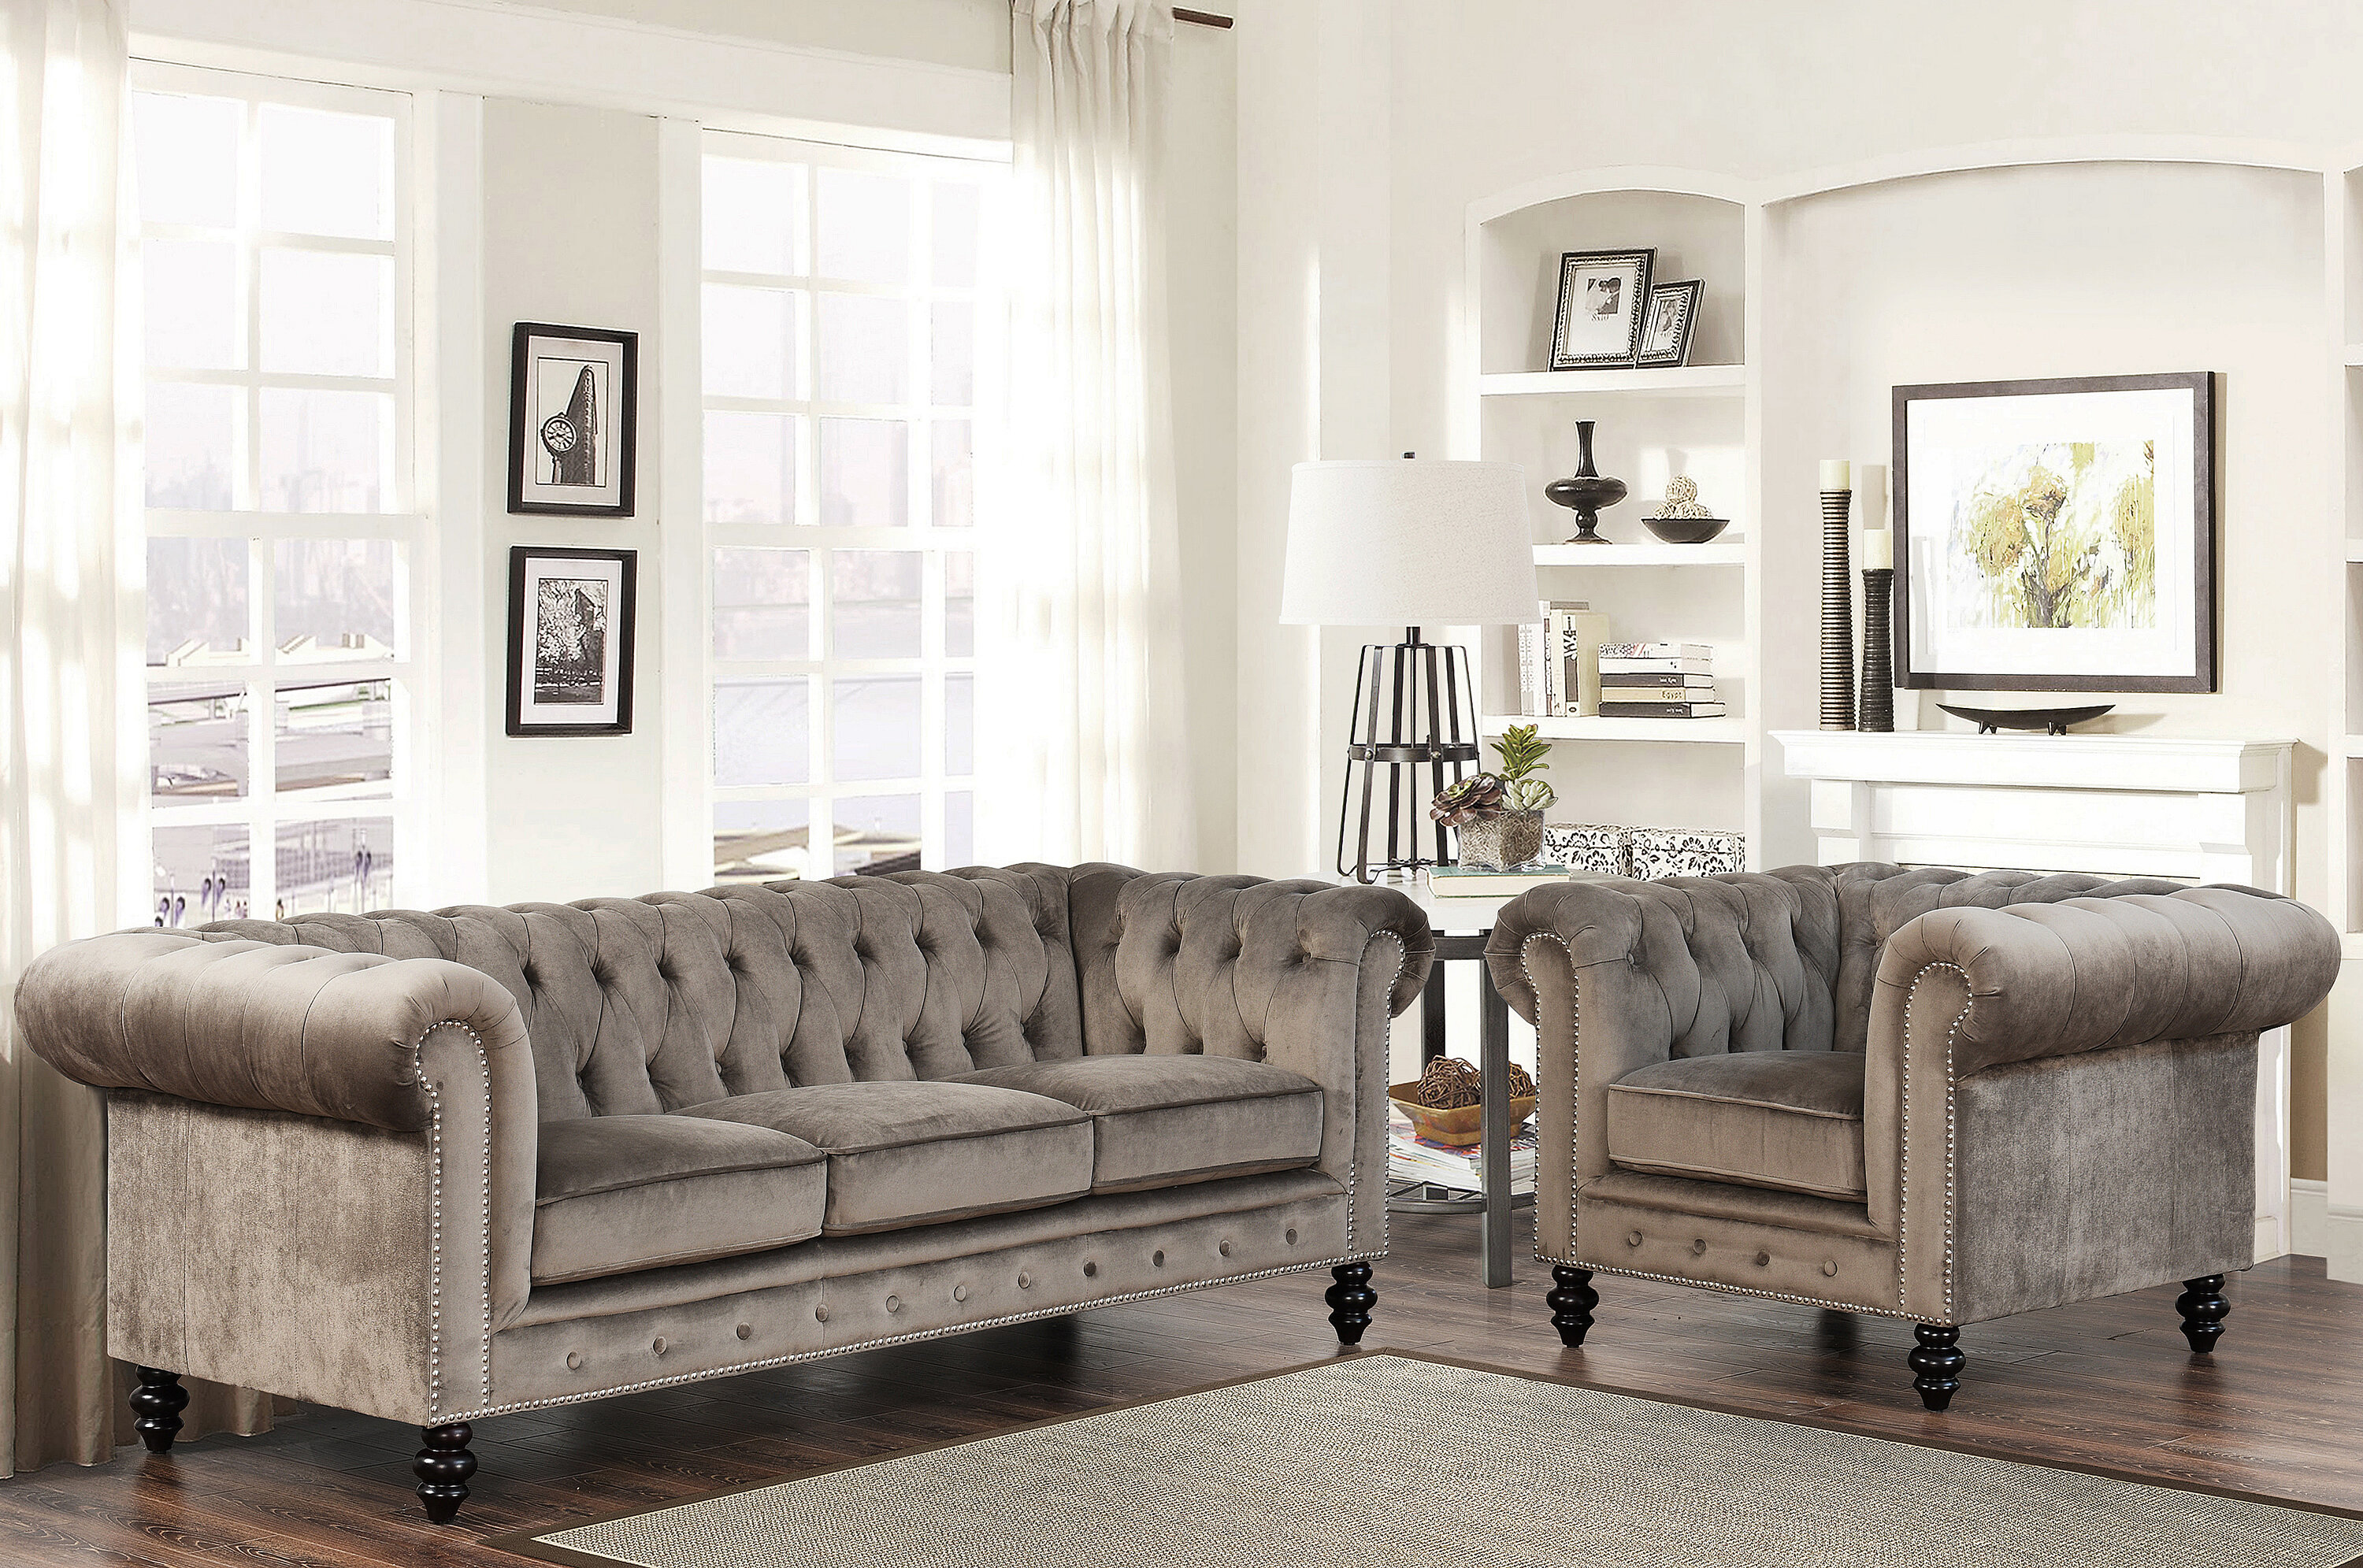 Mistana Brooklyn 2 Piece Living Room Set U0026 Reviews | Wayfair